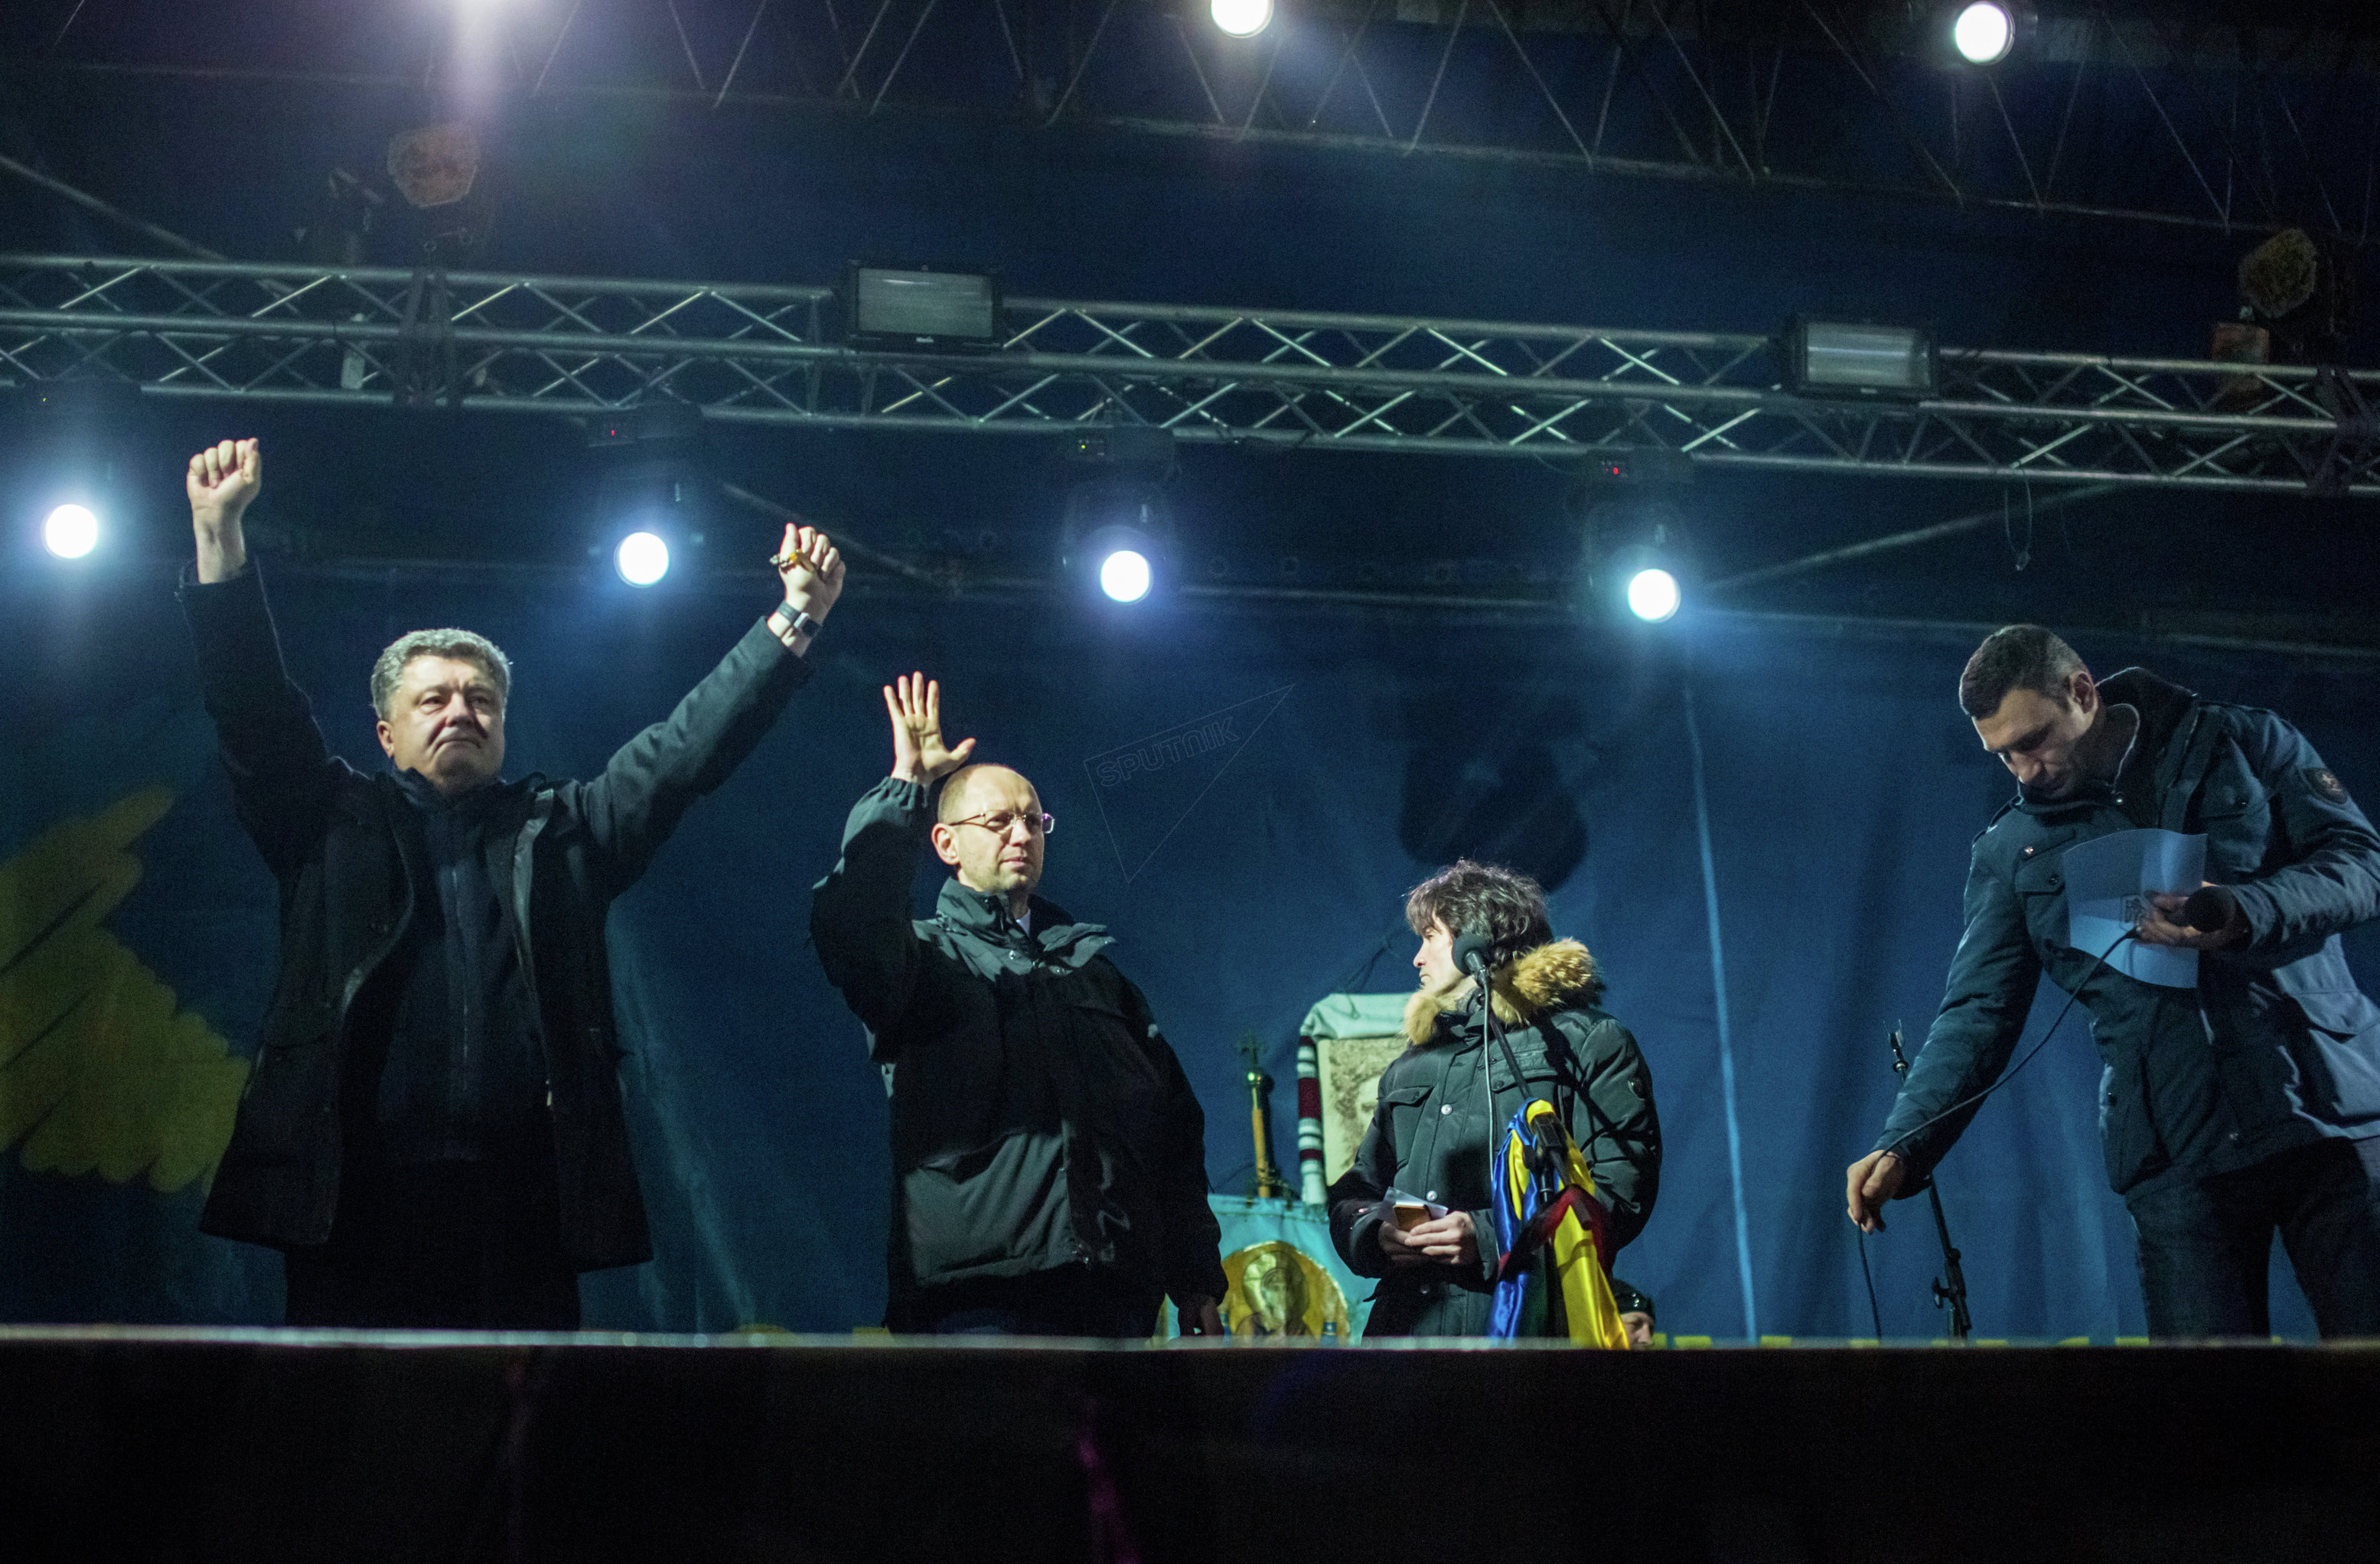 From left: Petro Poroshenko, a Ukrainian businessman and Roshen group owner, Arseniy Yatsenyuk, All-Ukrainian Union Fatherland leader; Vitali Klitschko, leader of the Ukrainian Democratic Alliance for Reform of Vitali Klitschko, during a rally in Independece Square, February 2014